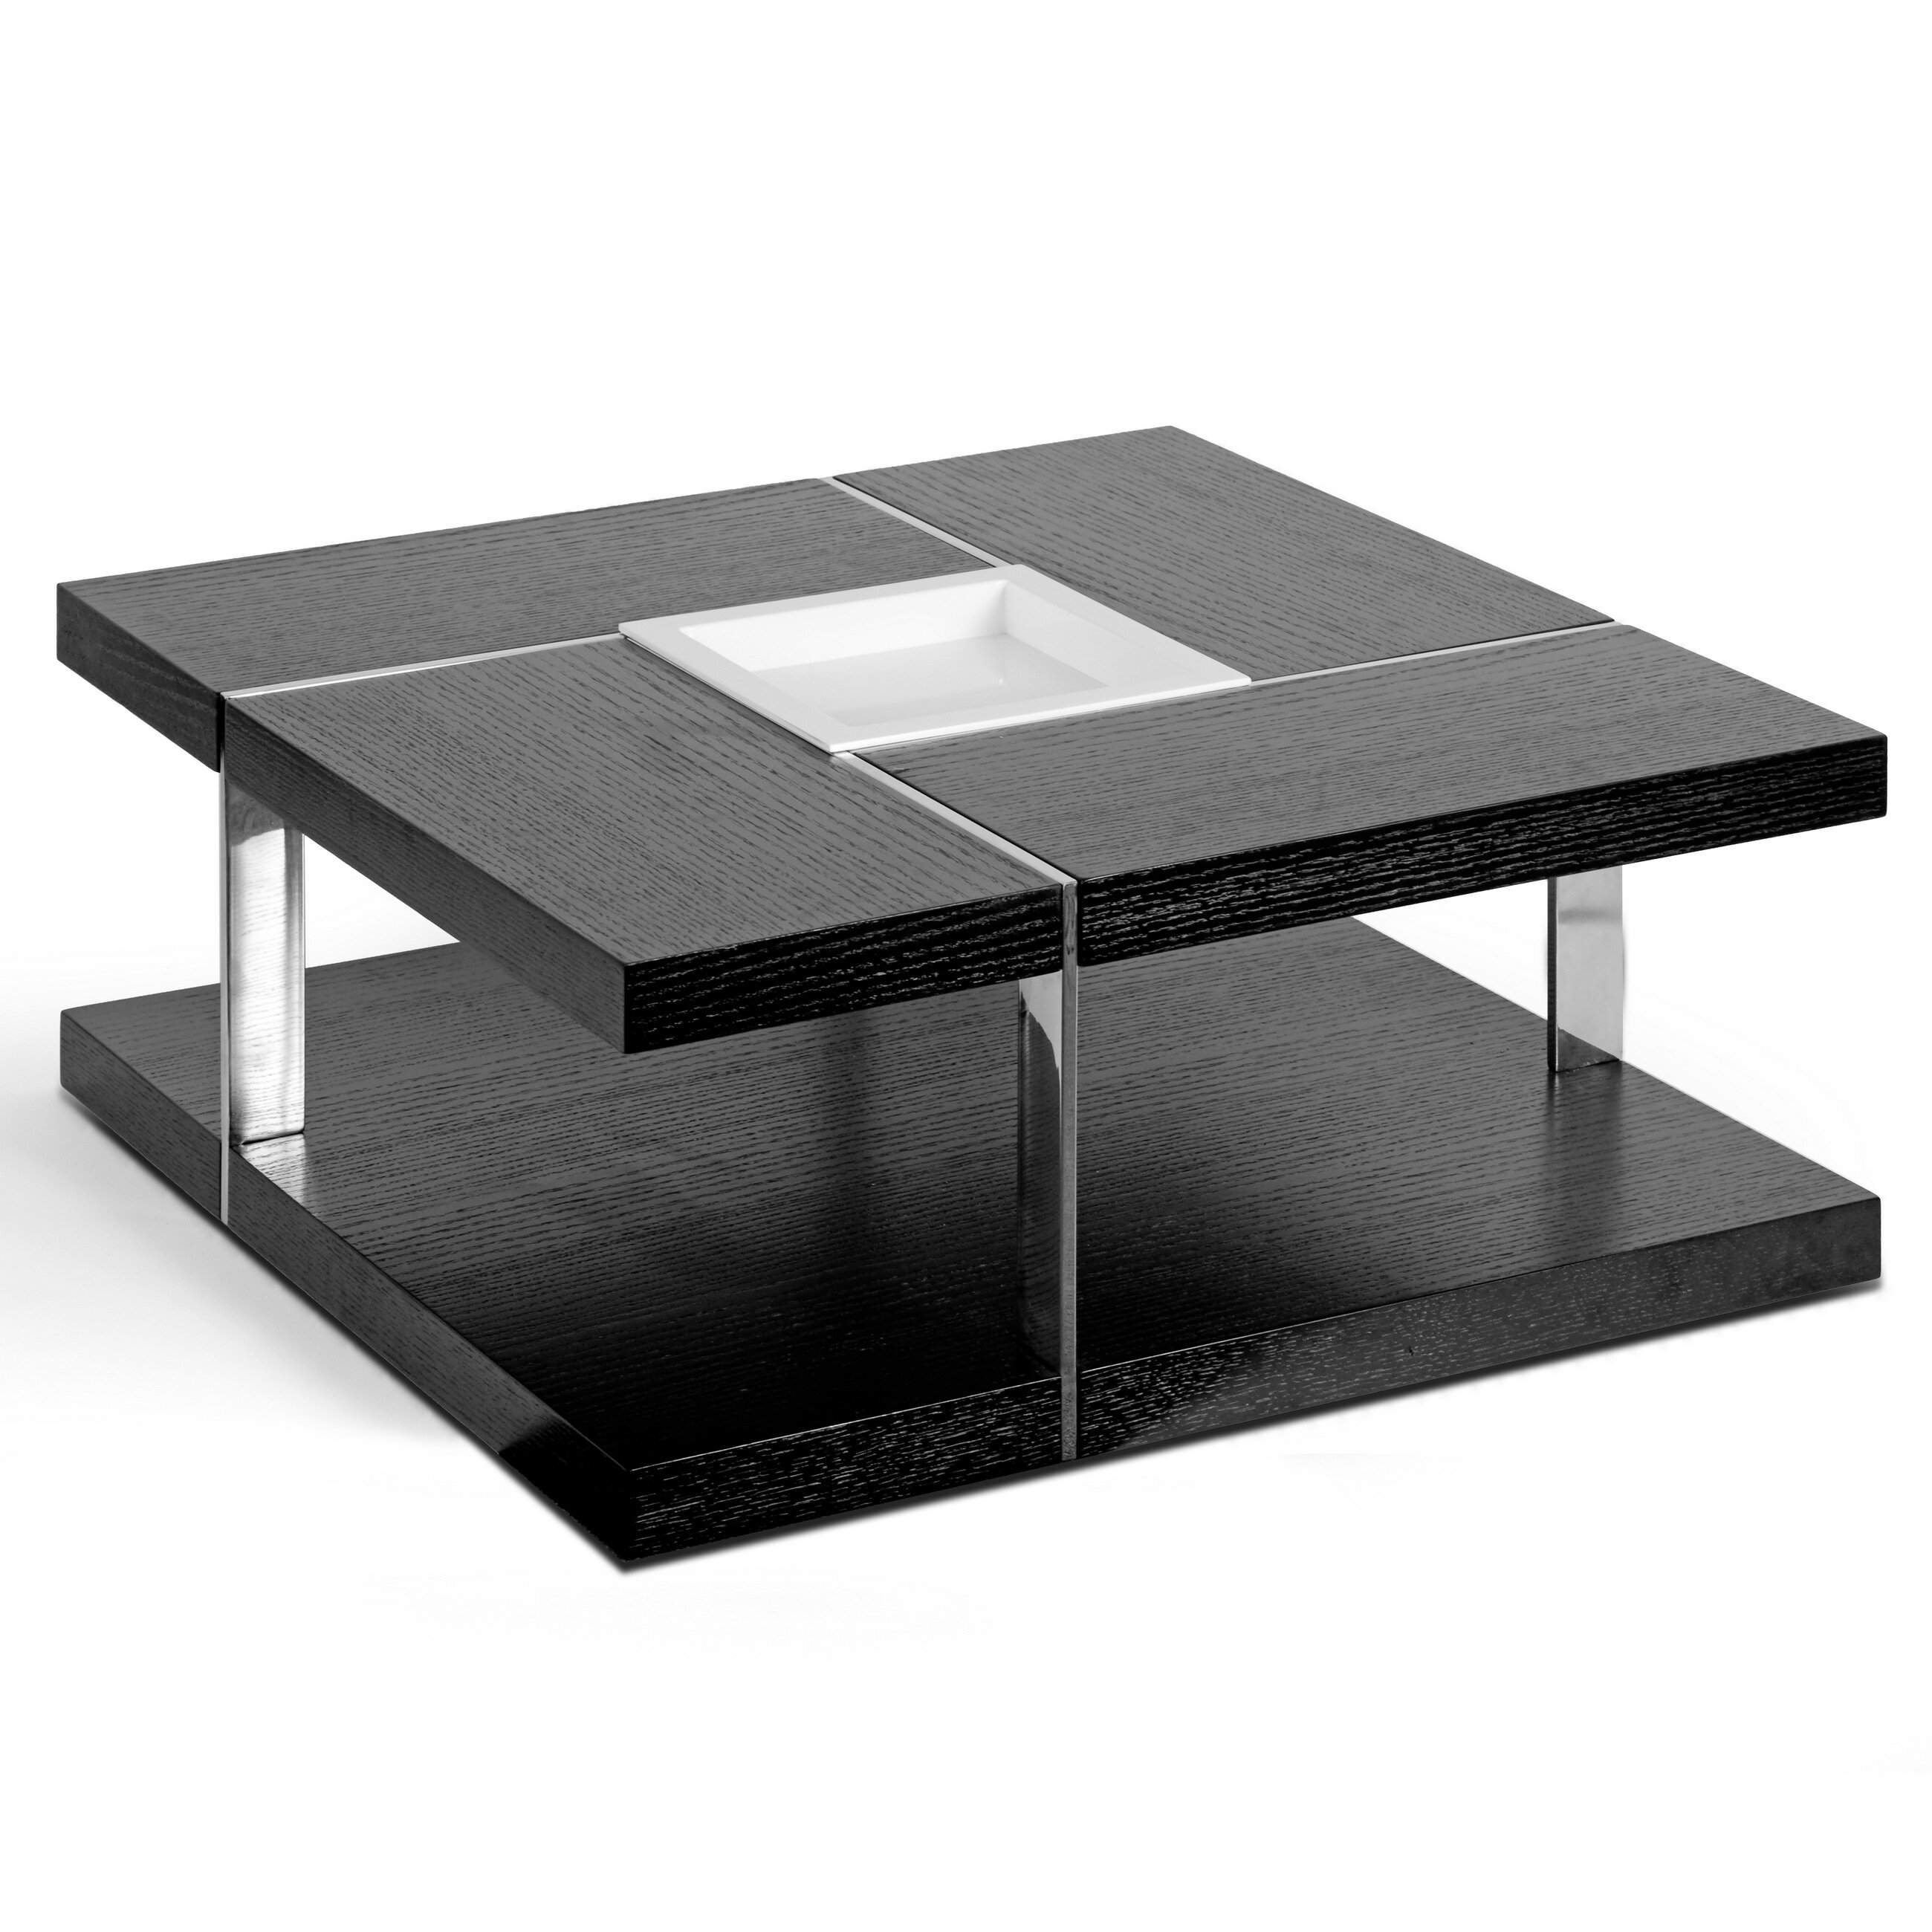 Glamour home decor aira square coffee table with tray top for Decor for coffee table